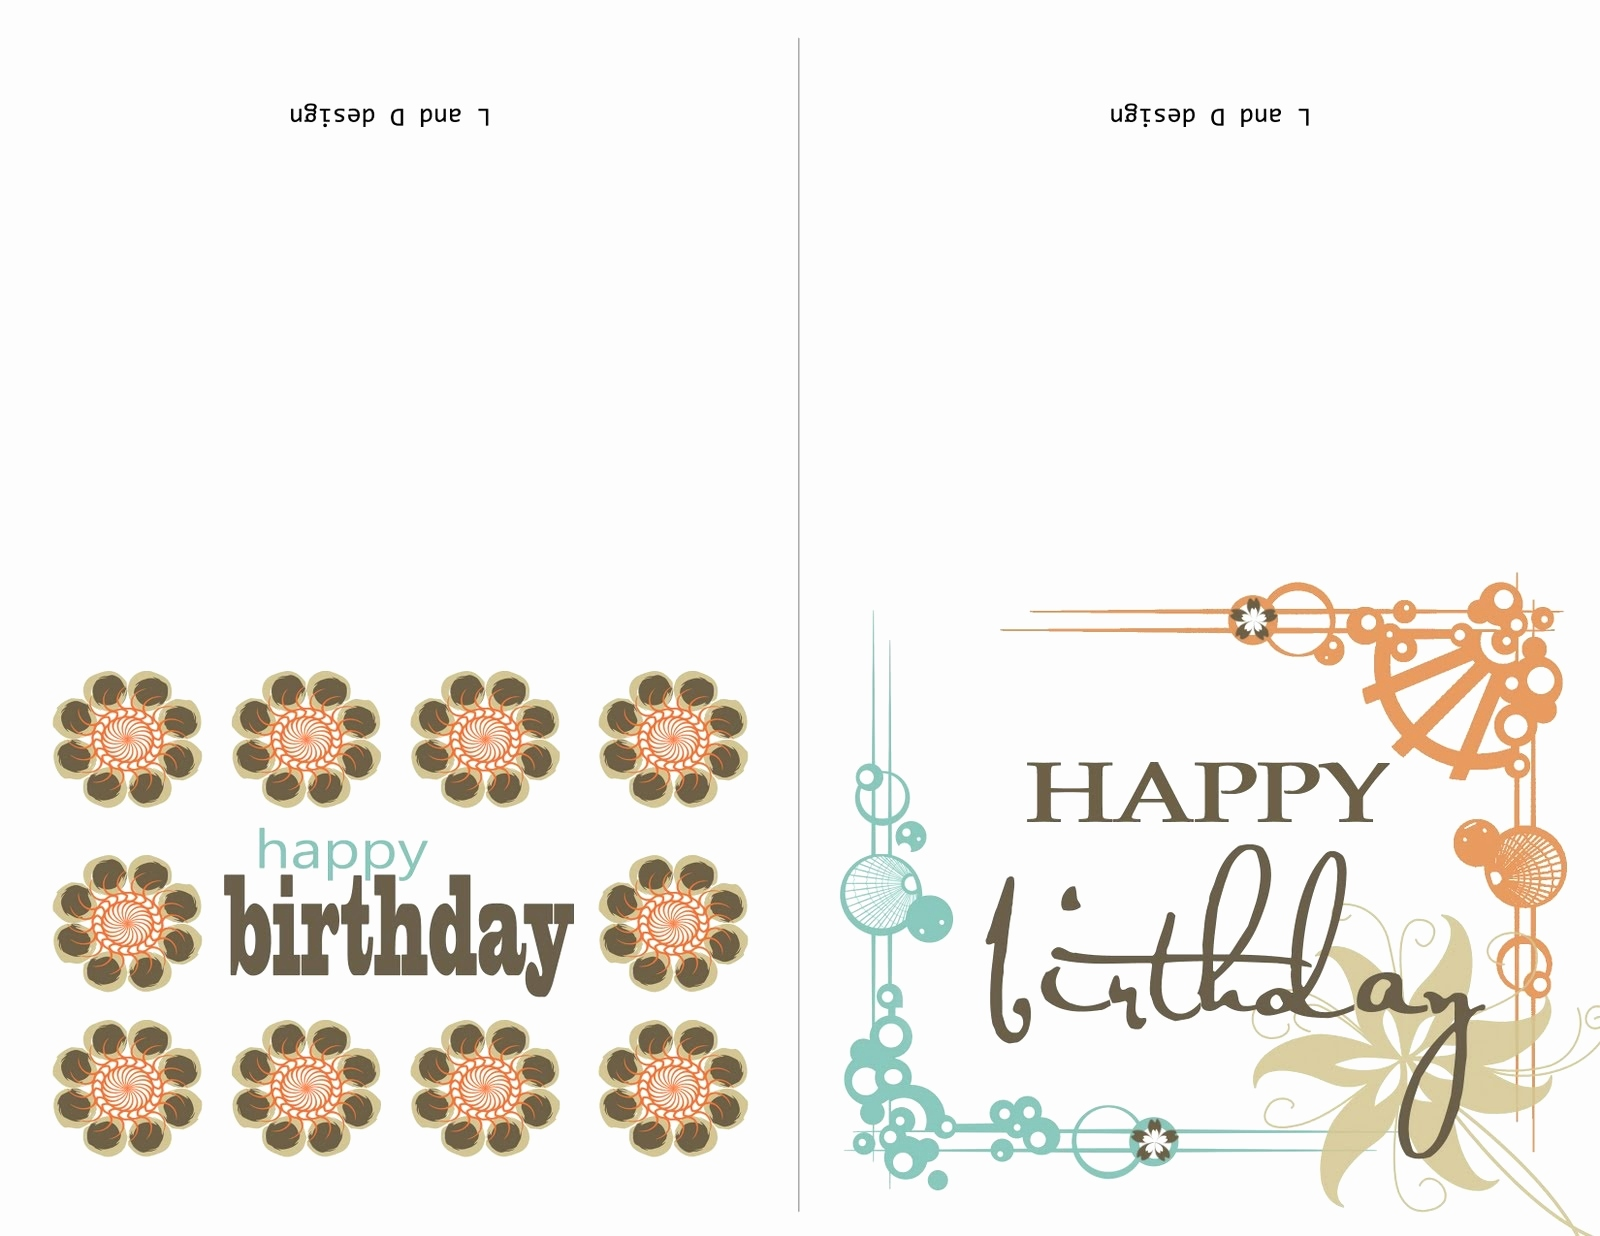 free printable 18th birthday cards ; free-printable-hallmark-birthday-cards-new-free-printable-hallmark-birthday-cards-gangcraft-of-free-printable-hallmark-birthday-cards